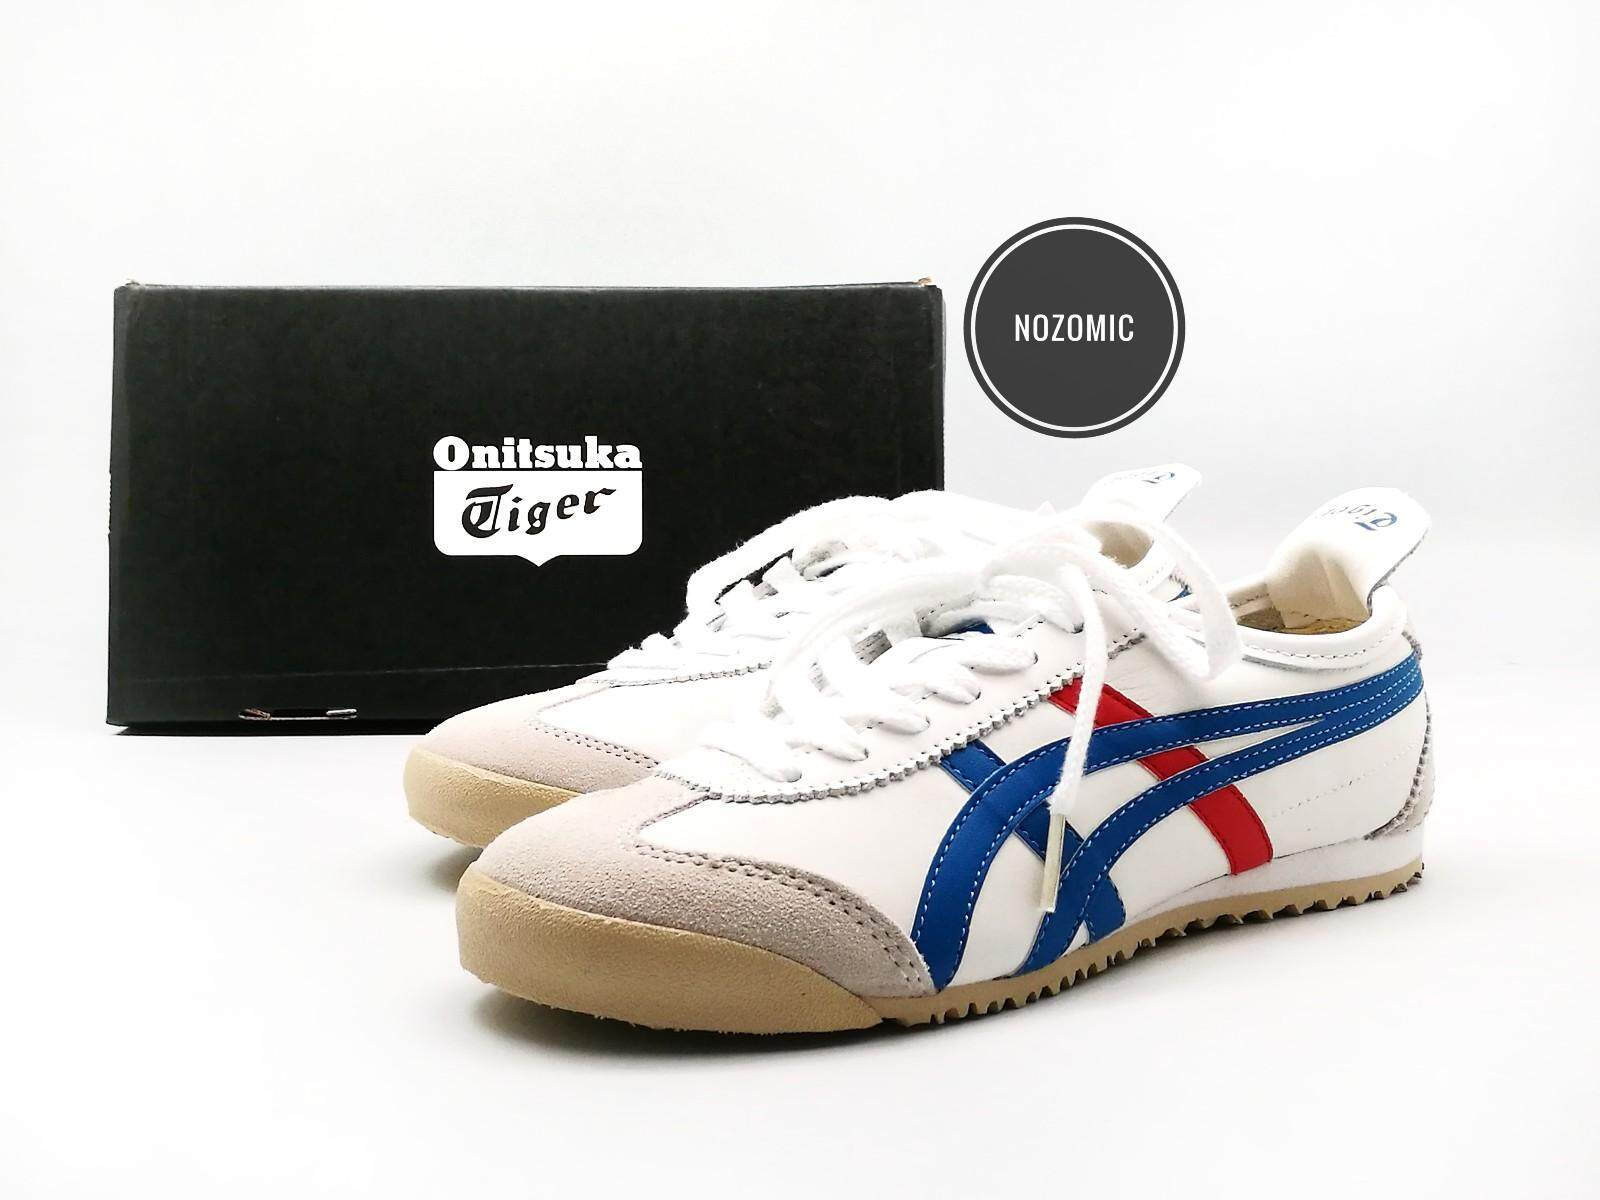 79efcbc136 Asics Onitsuka Tiger Mexico 66 White Base With Blue Red Stripes Leather  Sneakers for unisex